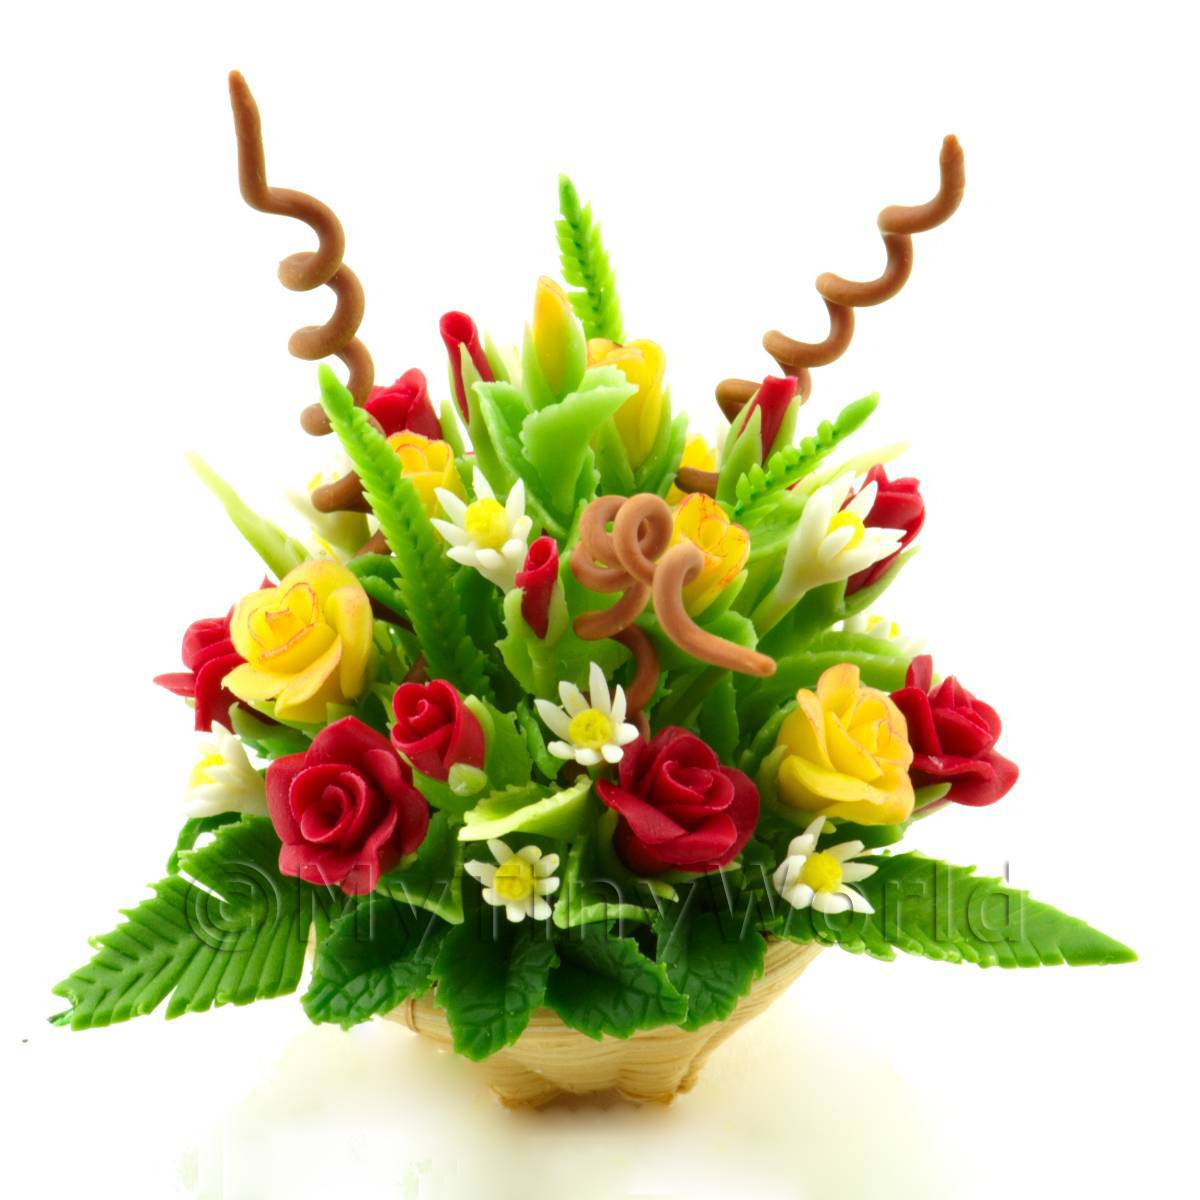 Flowers Bouquet Png Transparent - comousar